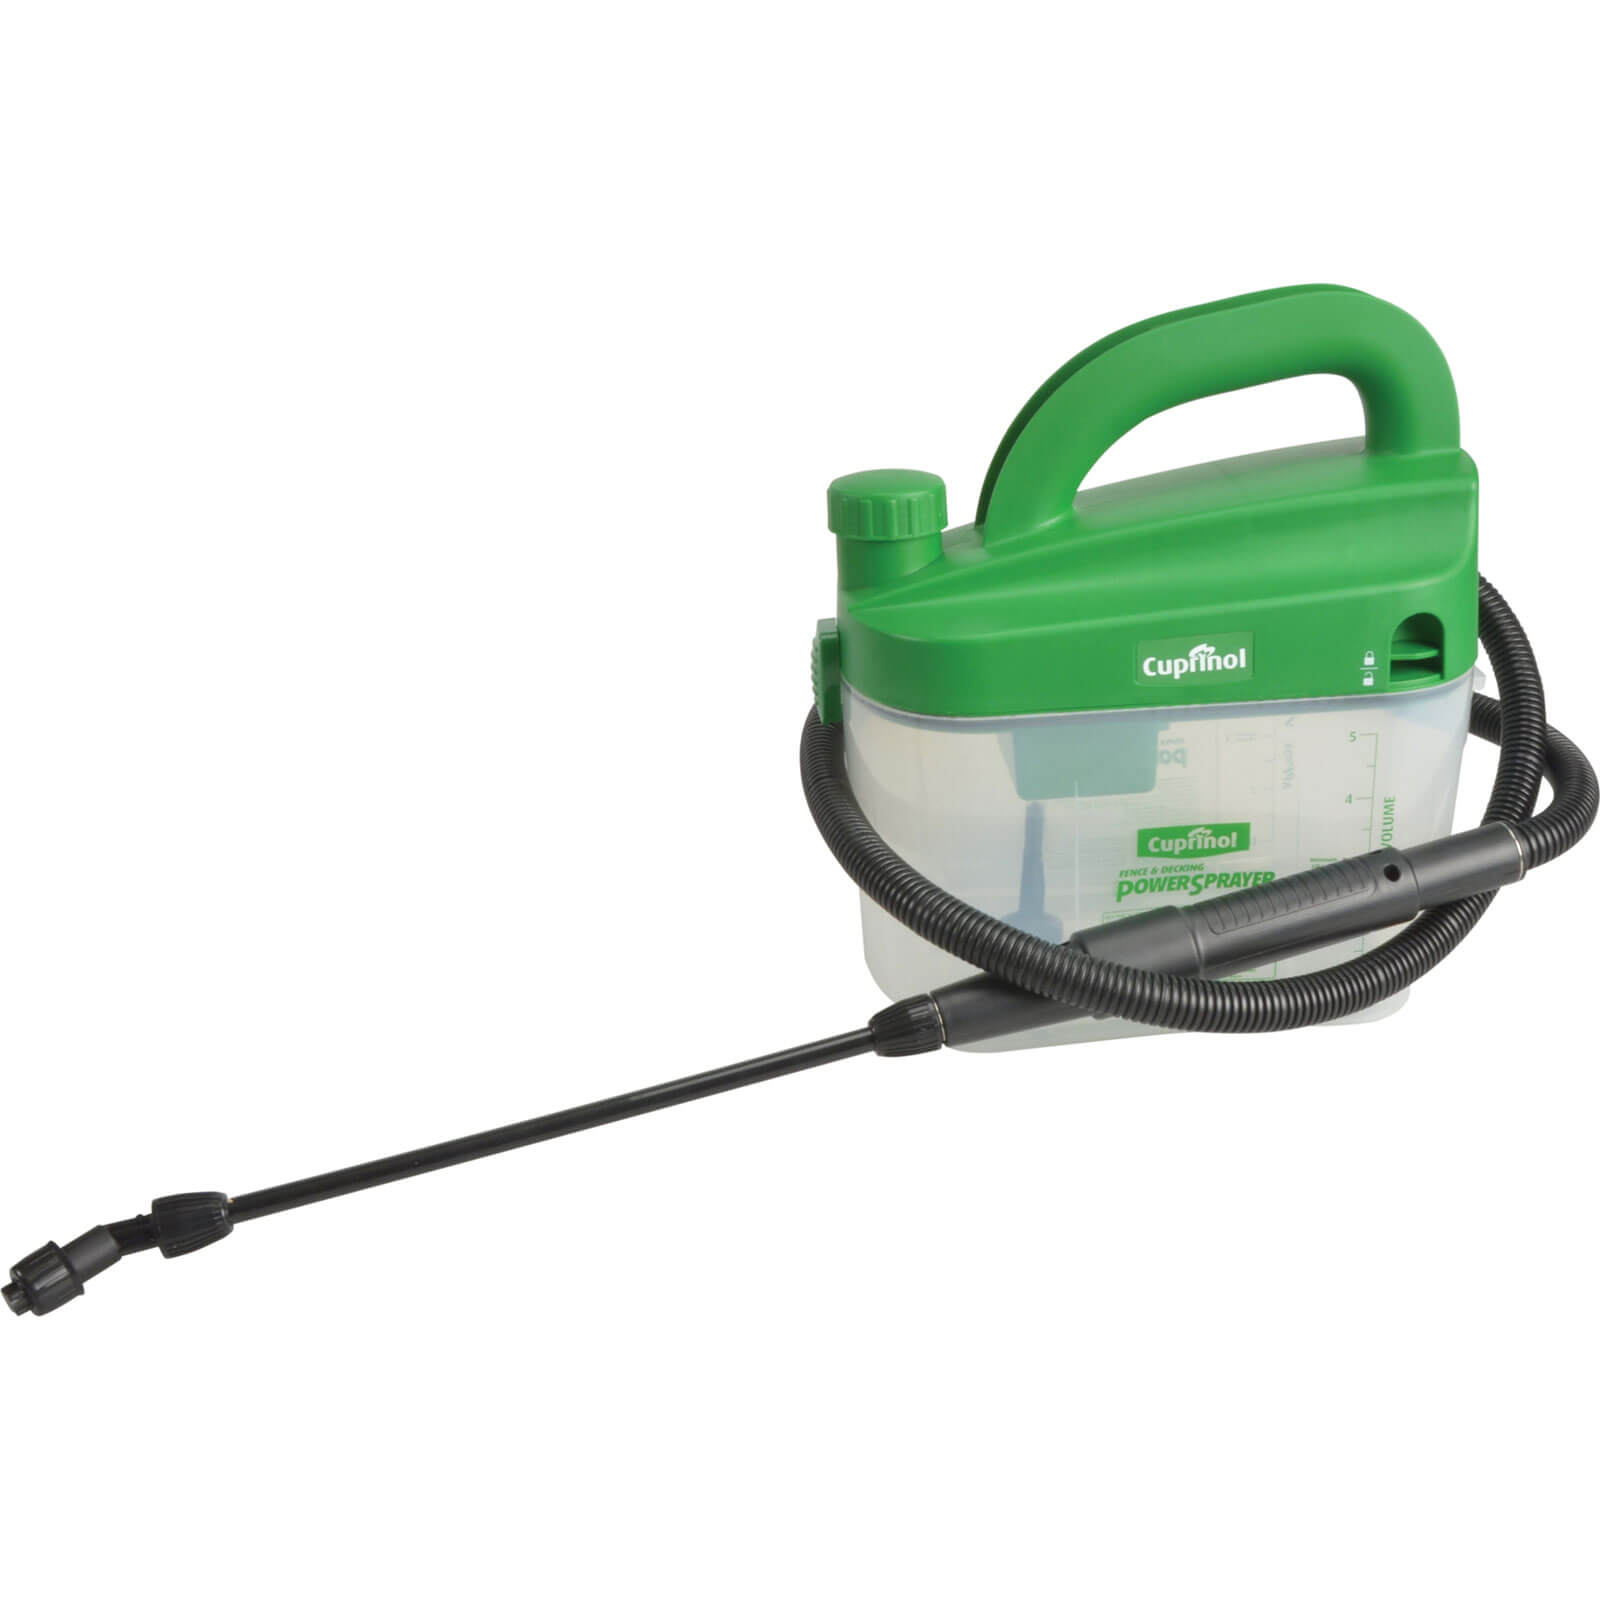 Cuprinol Battery Power Sprayer for Fence & Decking